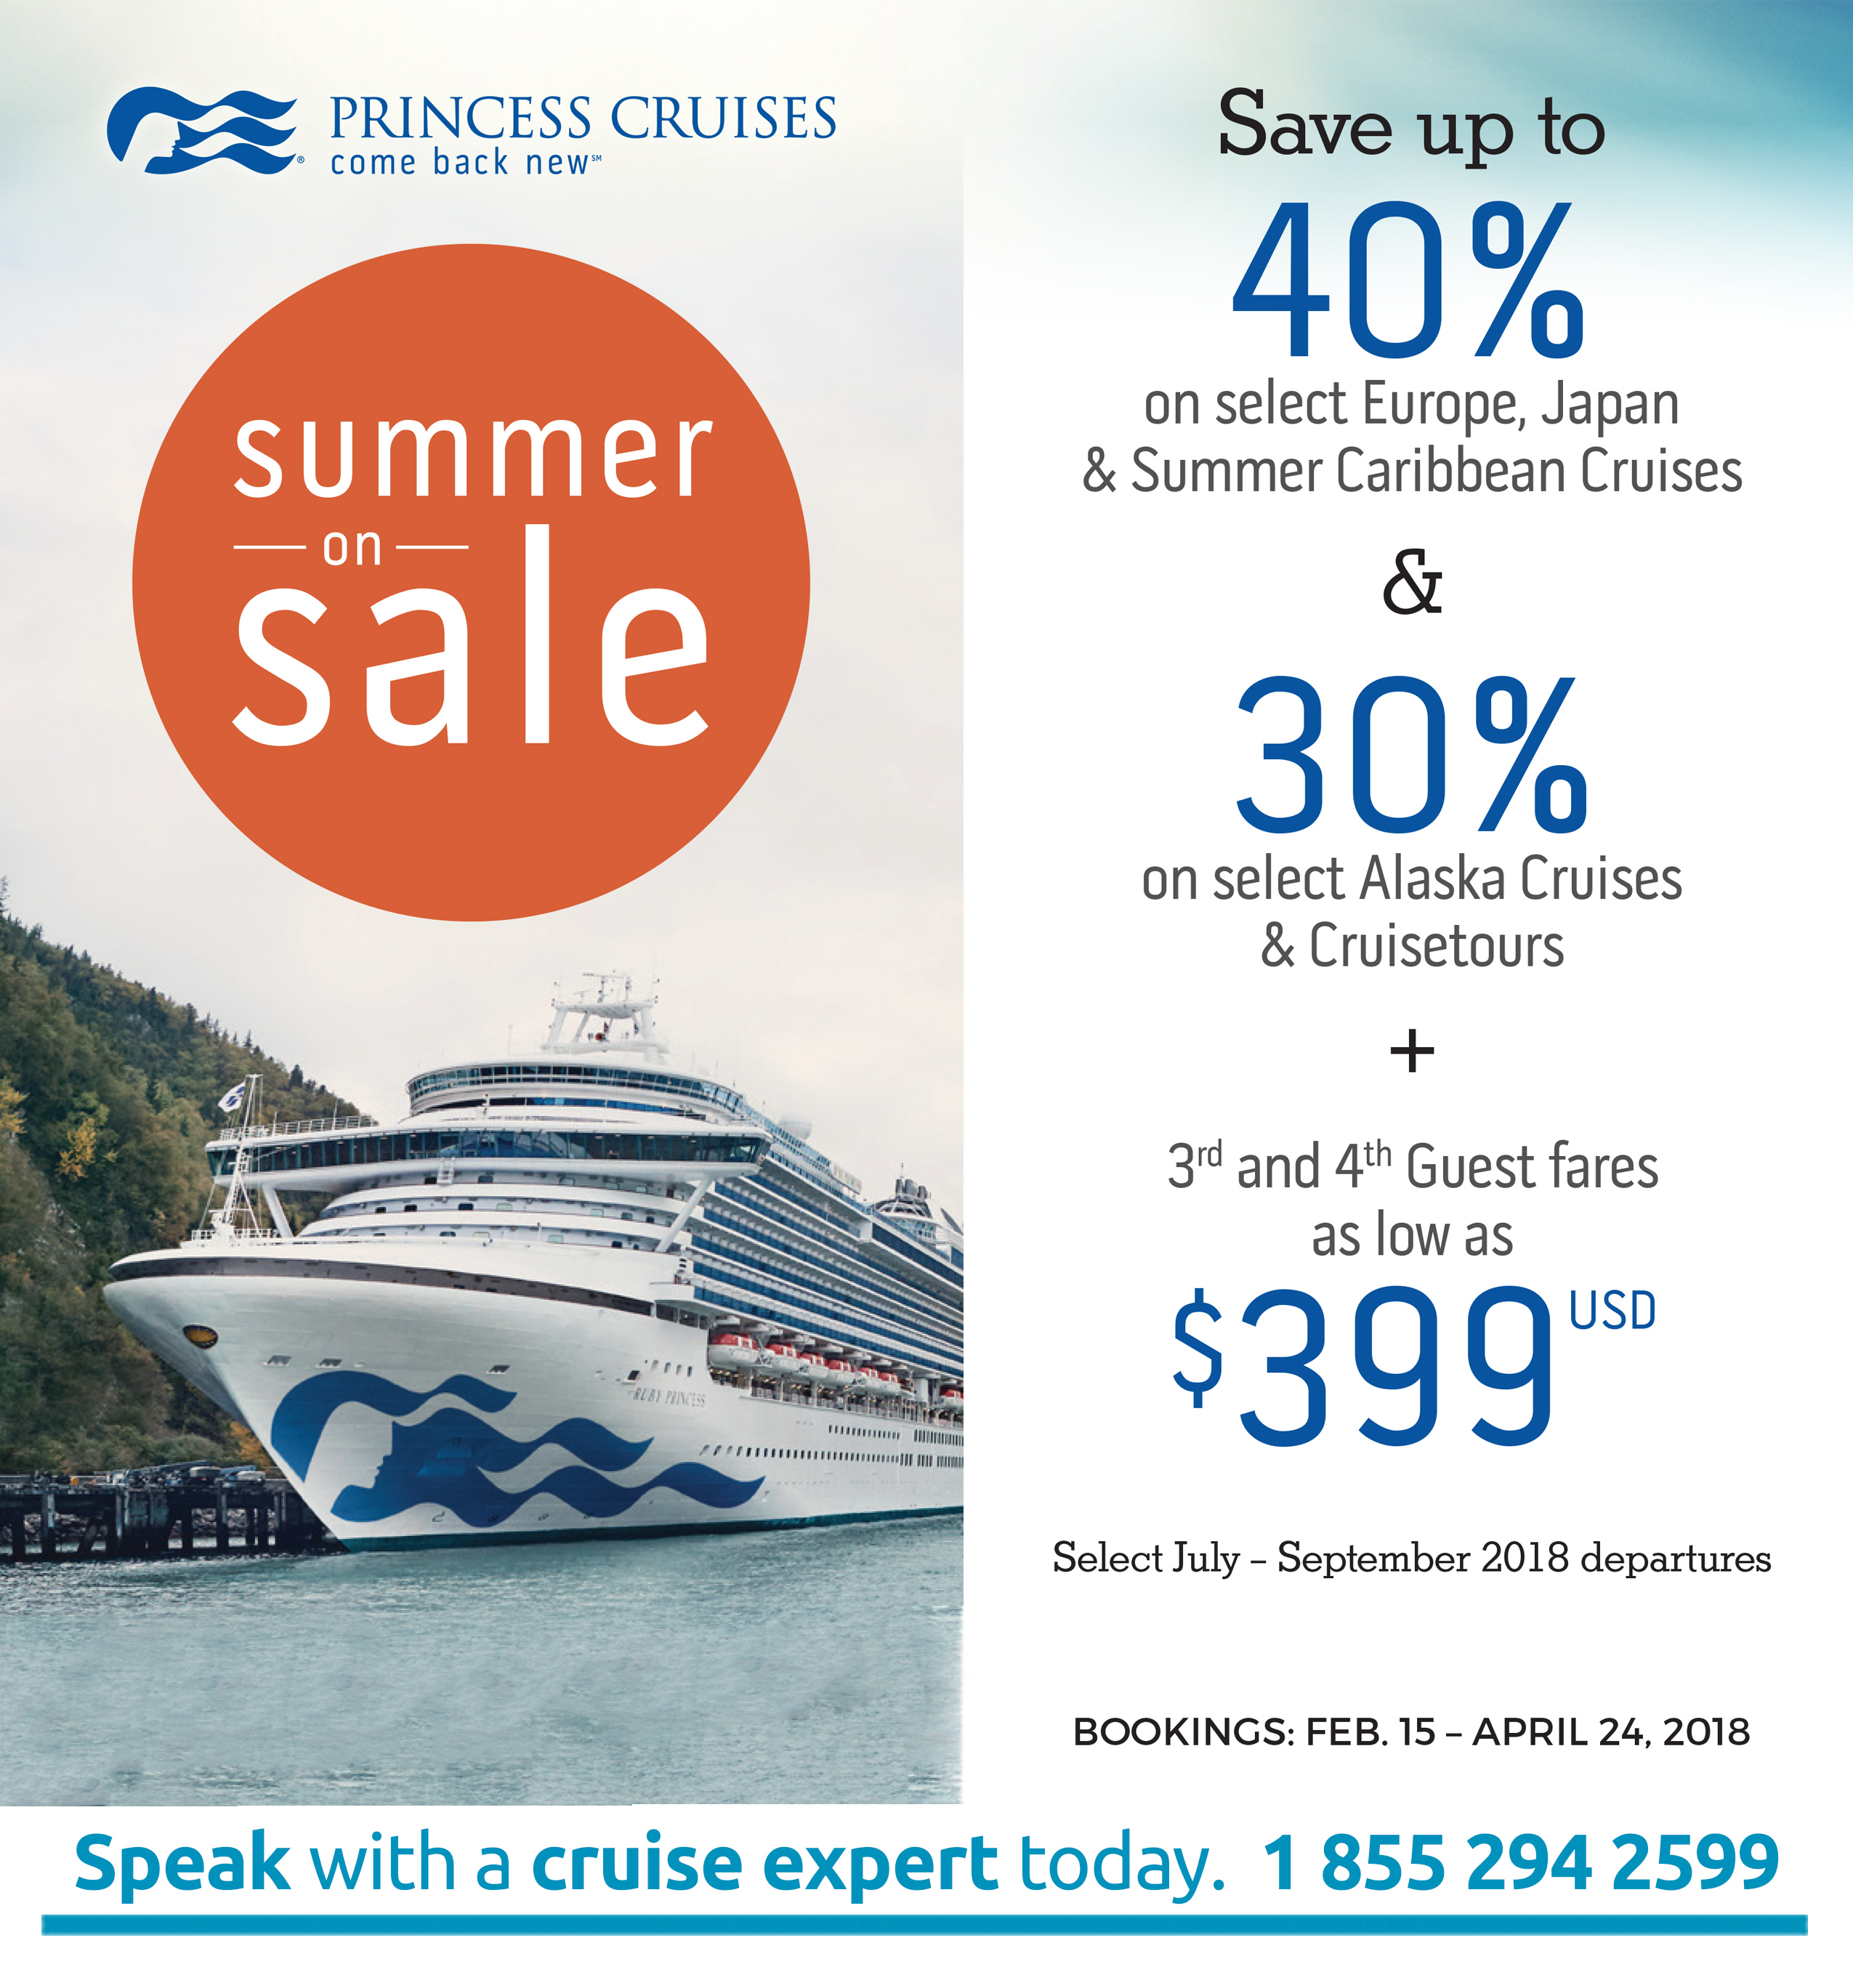 Cruise packages on the Princess Crises